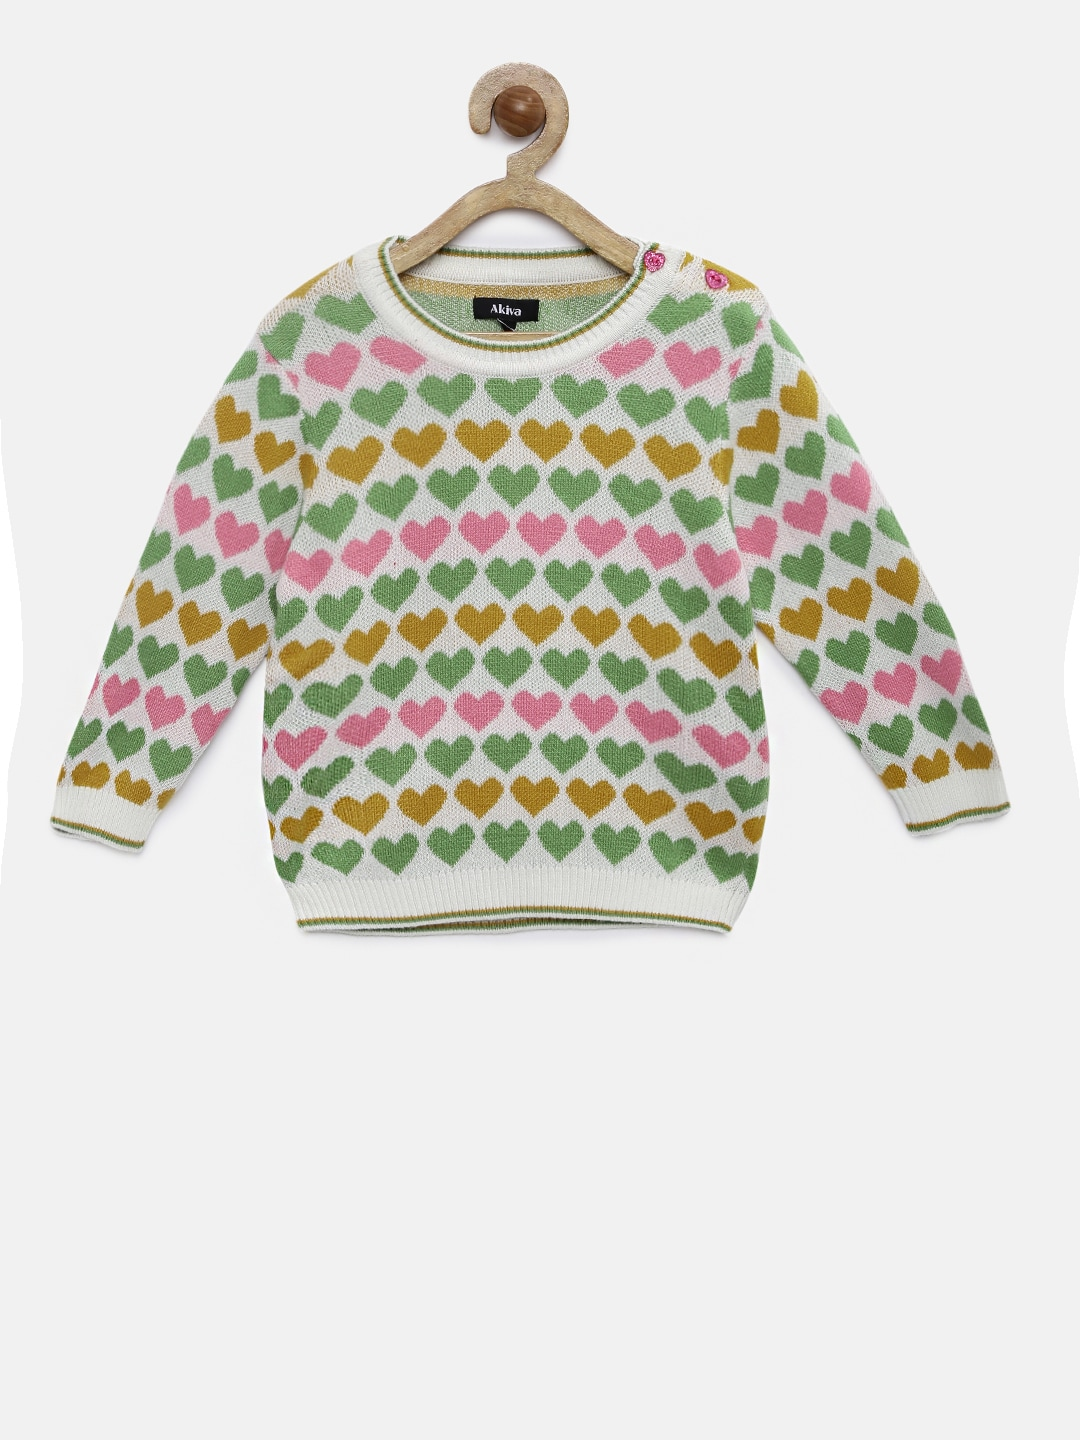 eda2c37a9d4b Wool For Boys Girls - Buy Wool For Boys Girls online in India